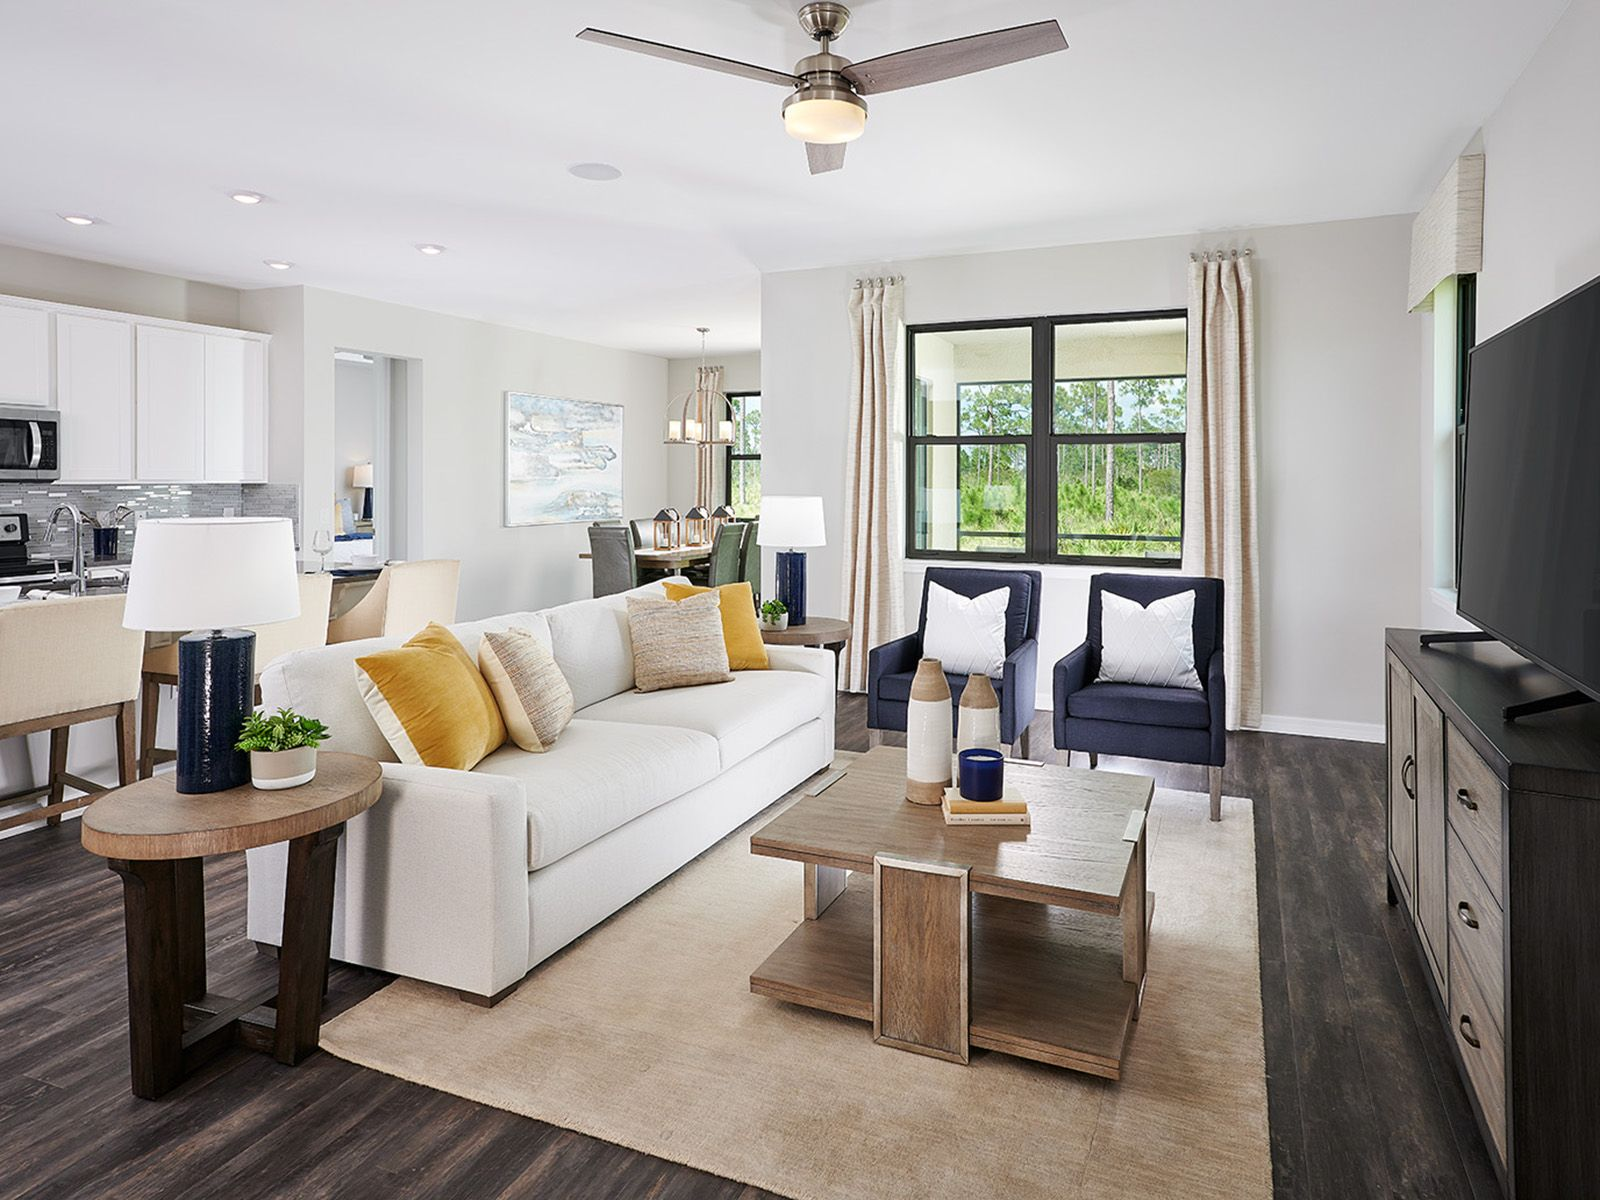 Living Area featured in the Osprey By Meritage Homes in Punta Gorda, FL